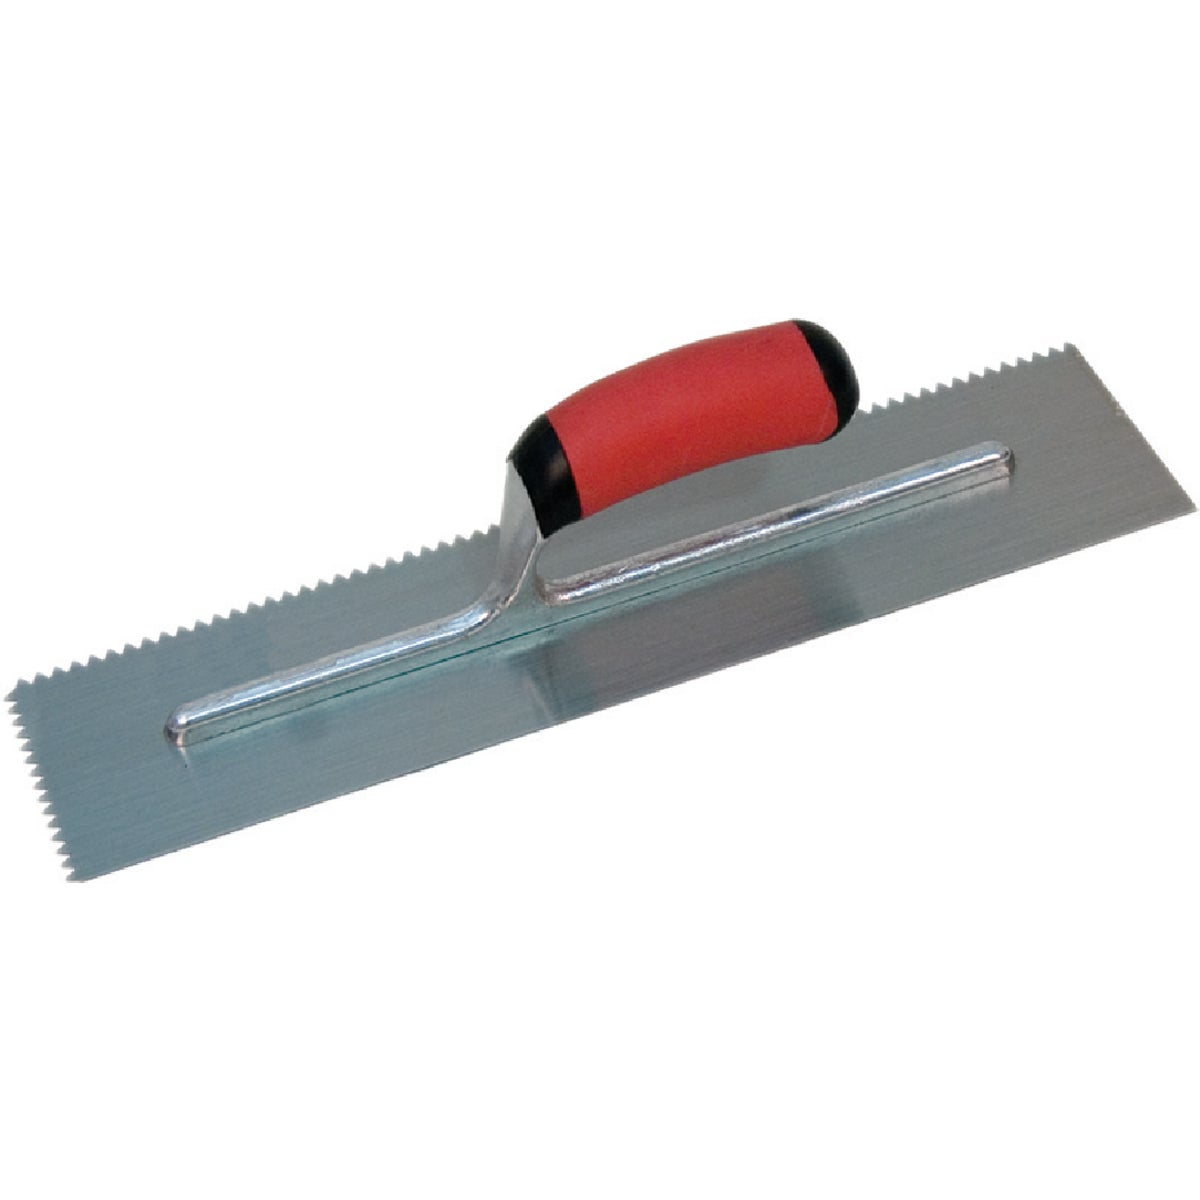 3/16 X 1/4 NOTCH TROWEL - 15682 by Marshalltown Trowel